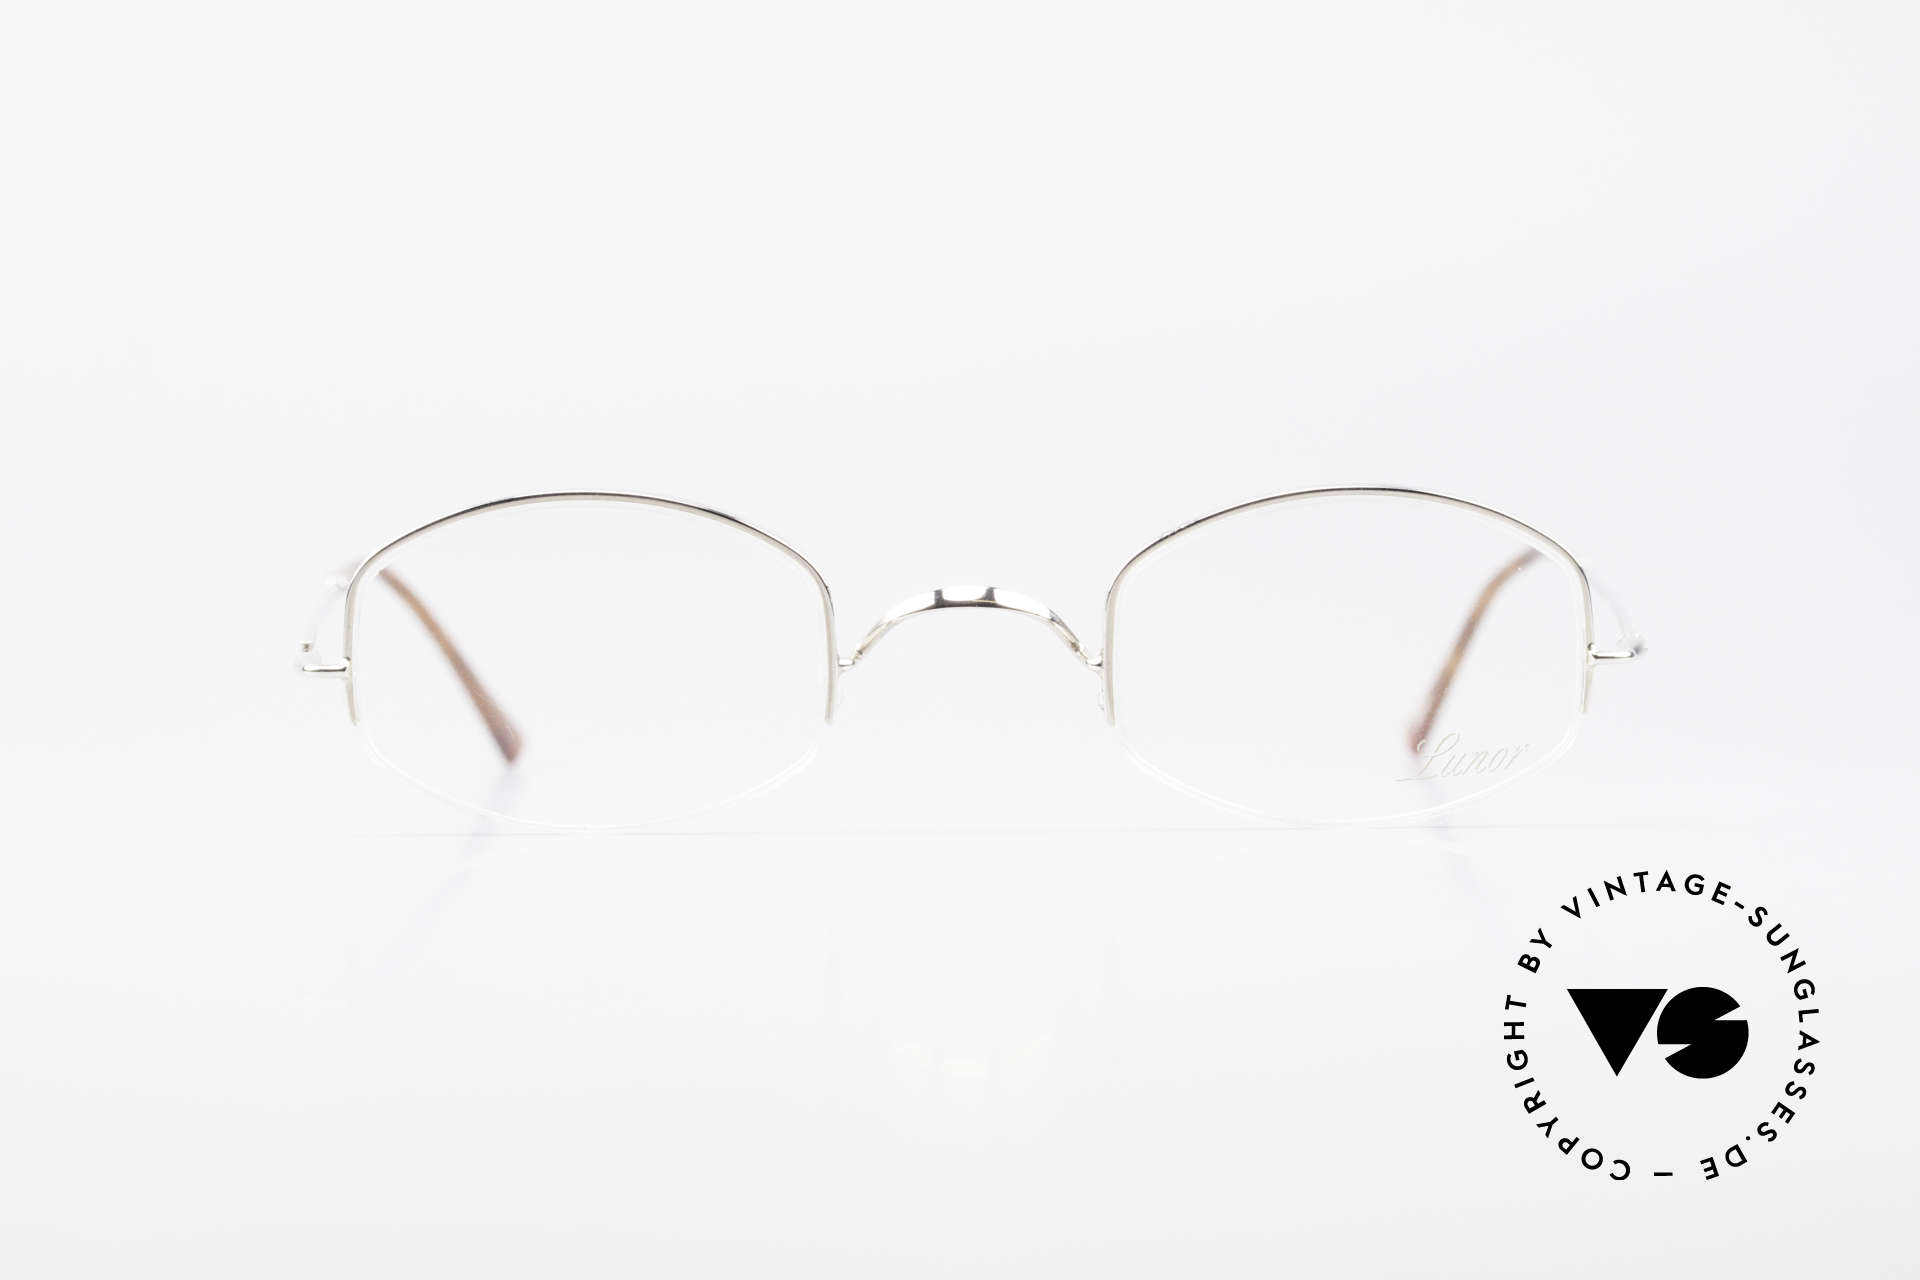 Lunor String Semi Rimless Vintage Frame, traditional German brand; quality handmade in Germany, Made for Men and Women